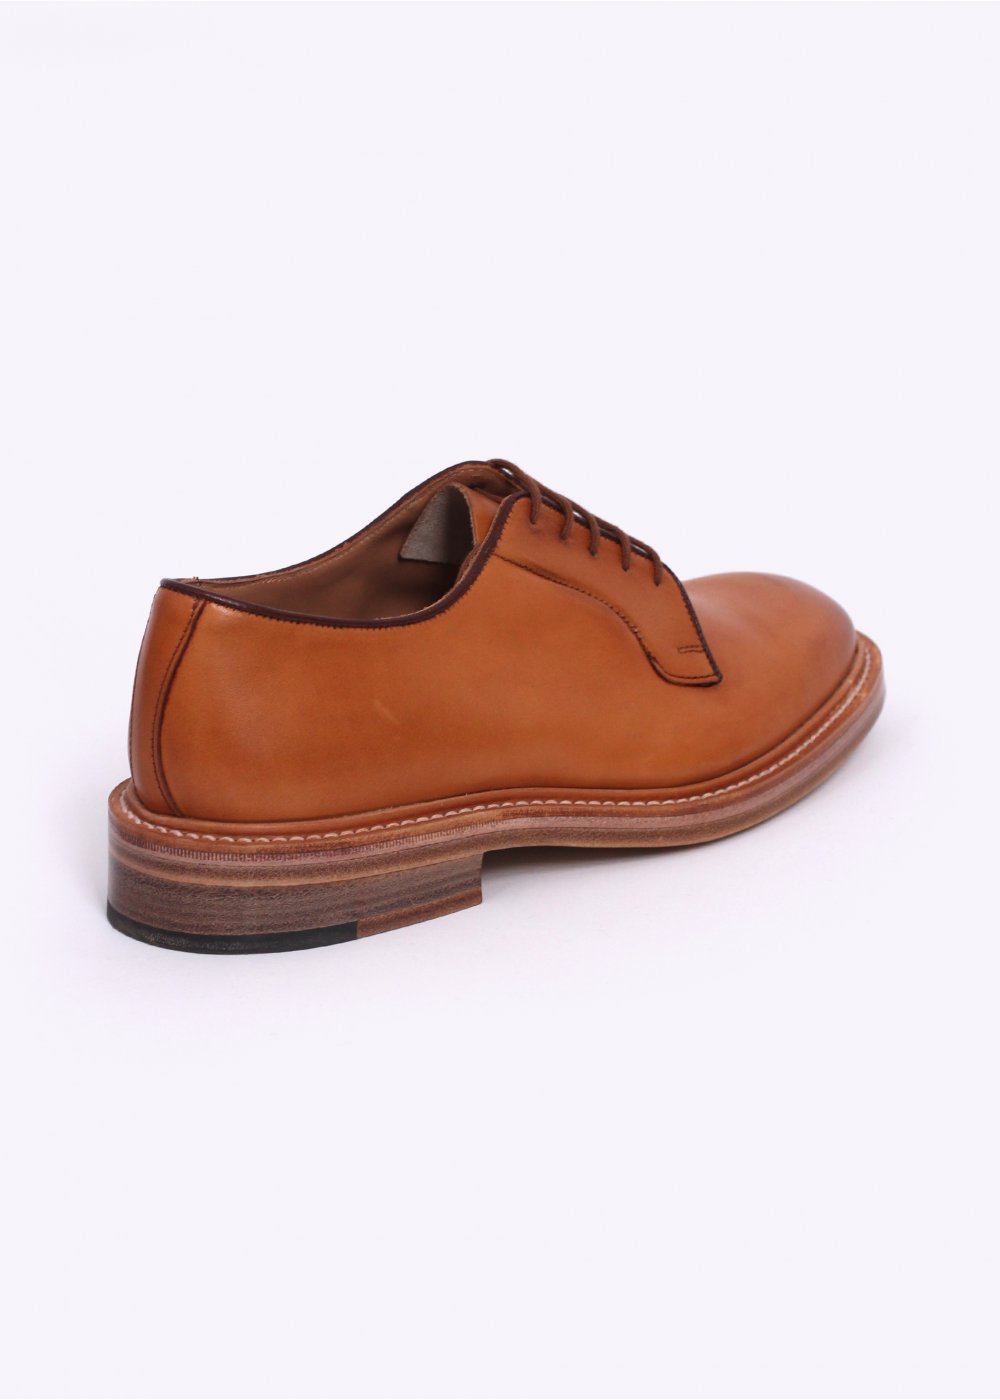 Trickers Shoes 28 Images Trickers Richard Suede Brogue Shoe Brown The Sporting Lodge